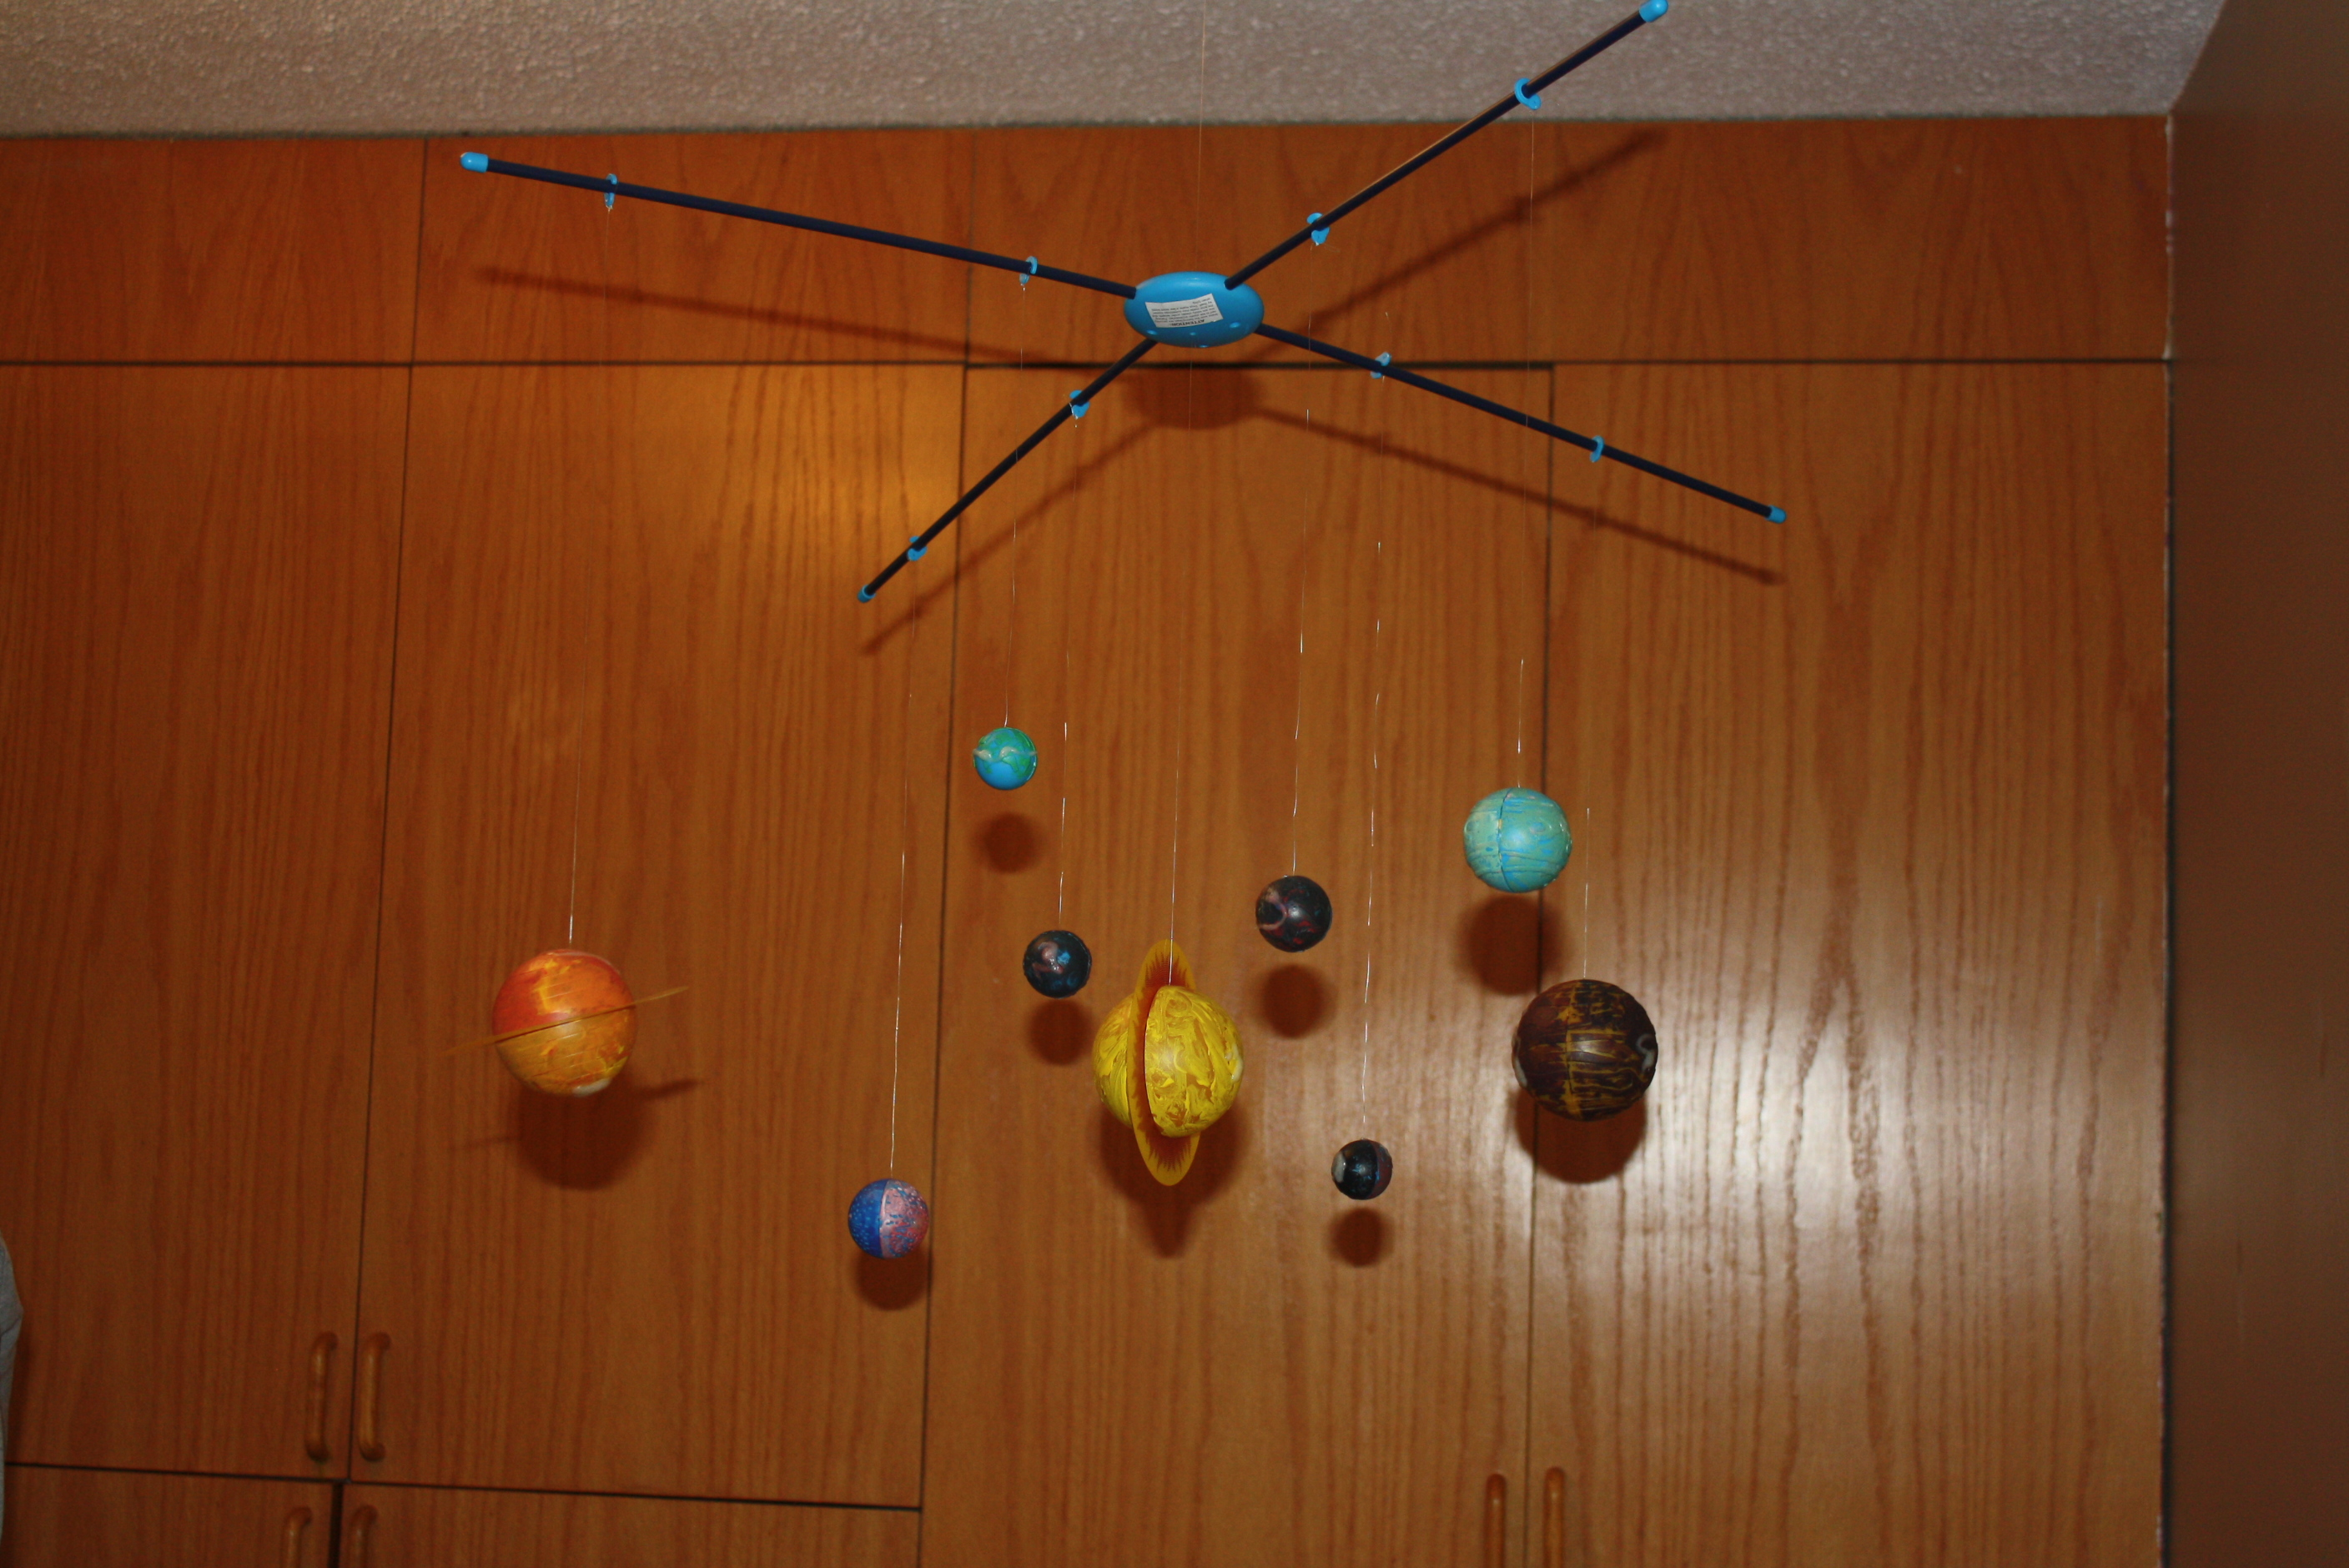 solar system project ideas for 4th grade - photo #18